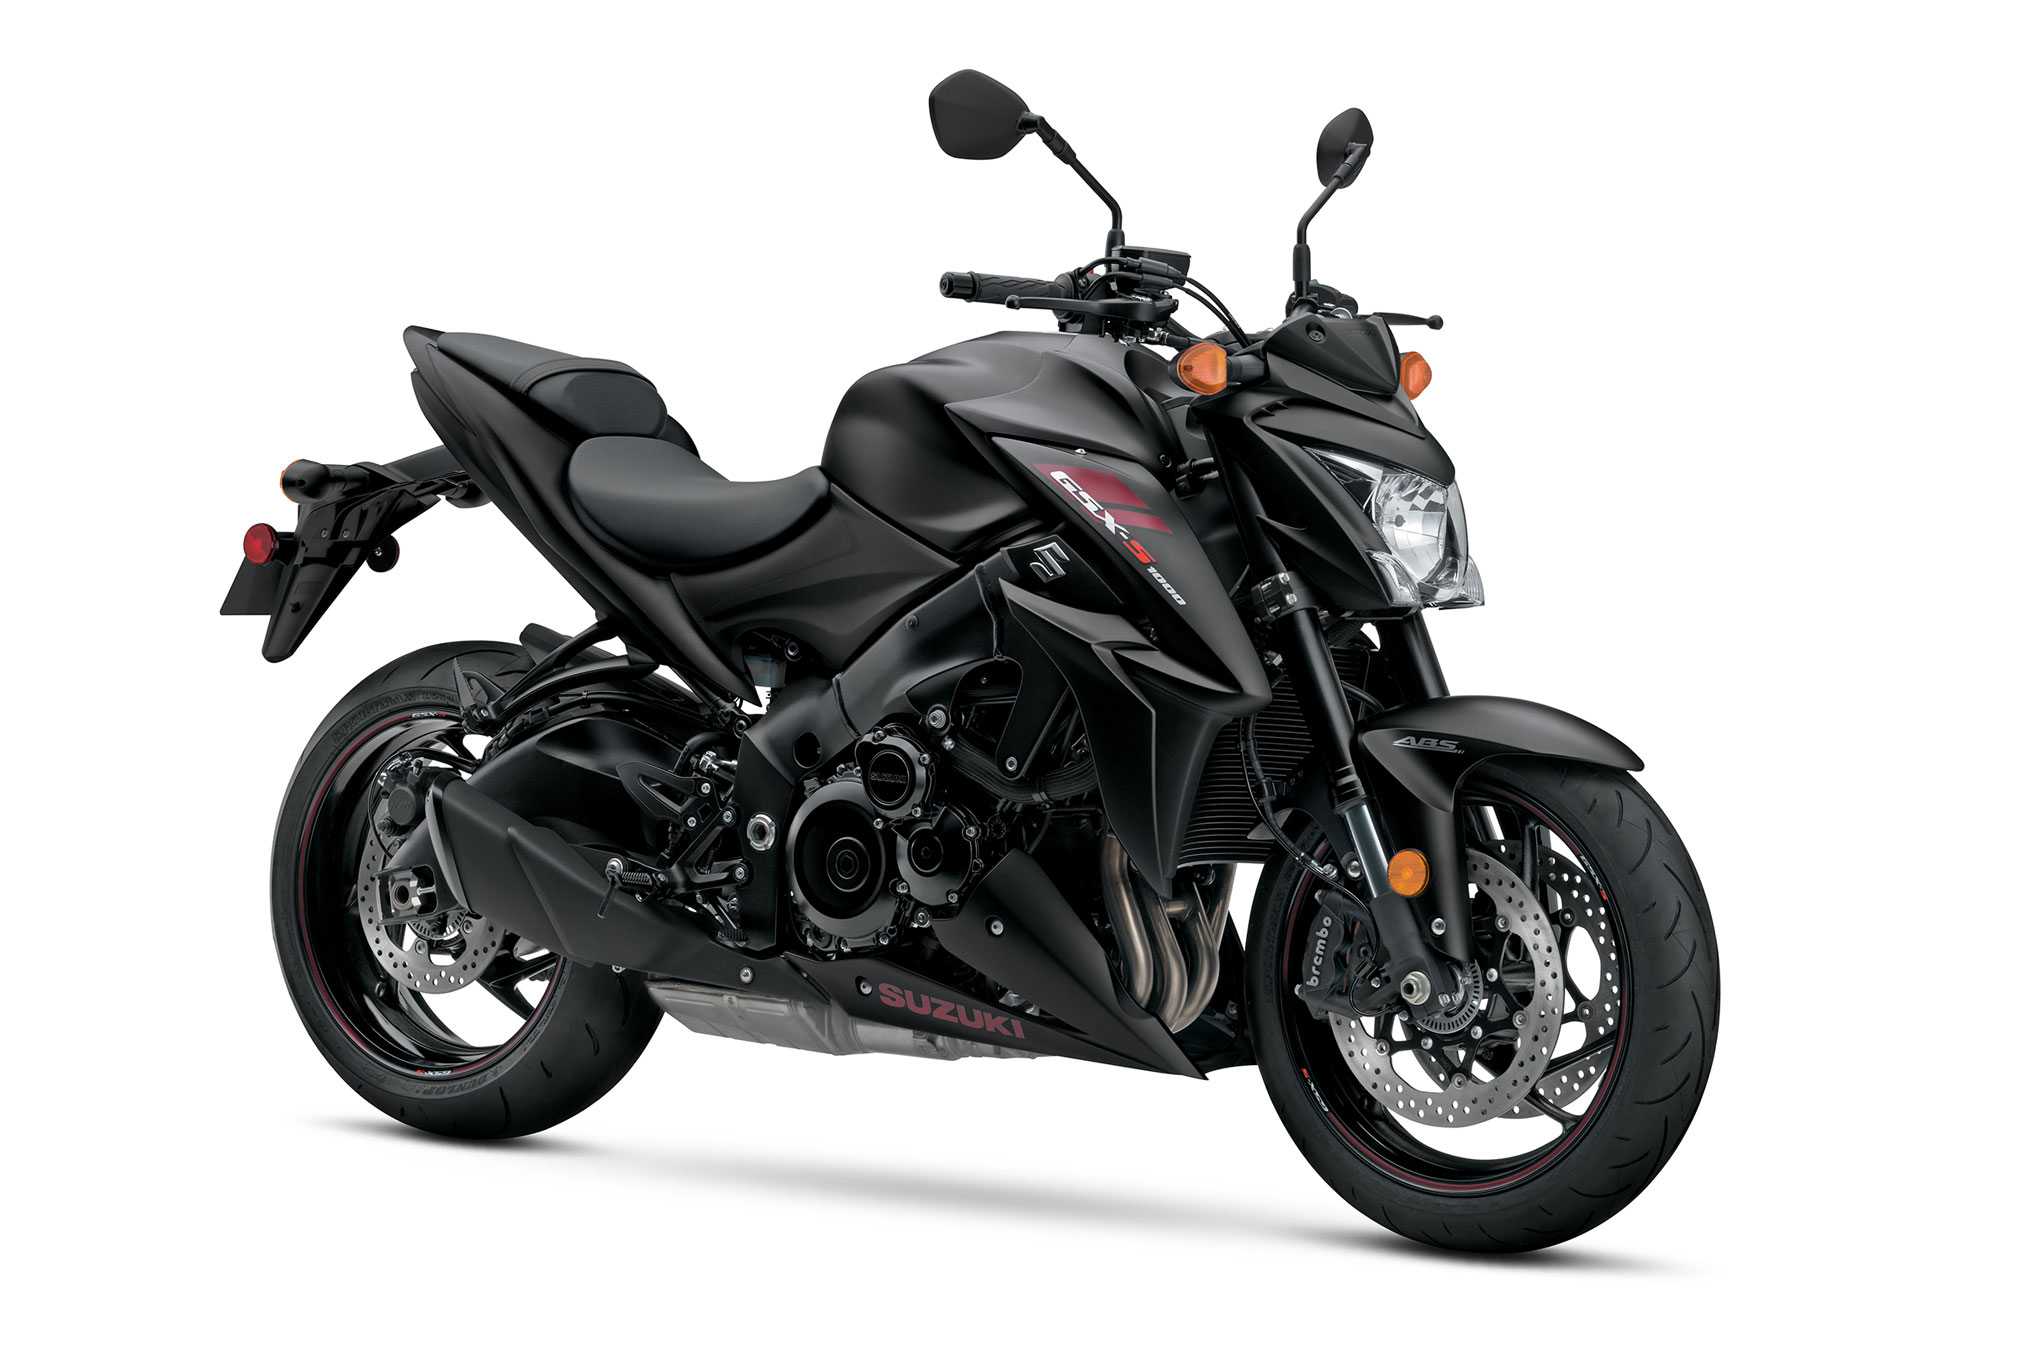 Gsxr 1000 2018 >> 2018 Suzuki GSX-S1000Z ABS Review - TotalMotorcycle